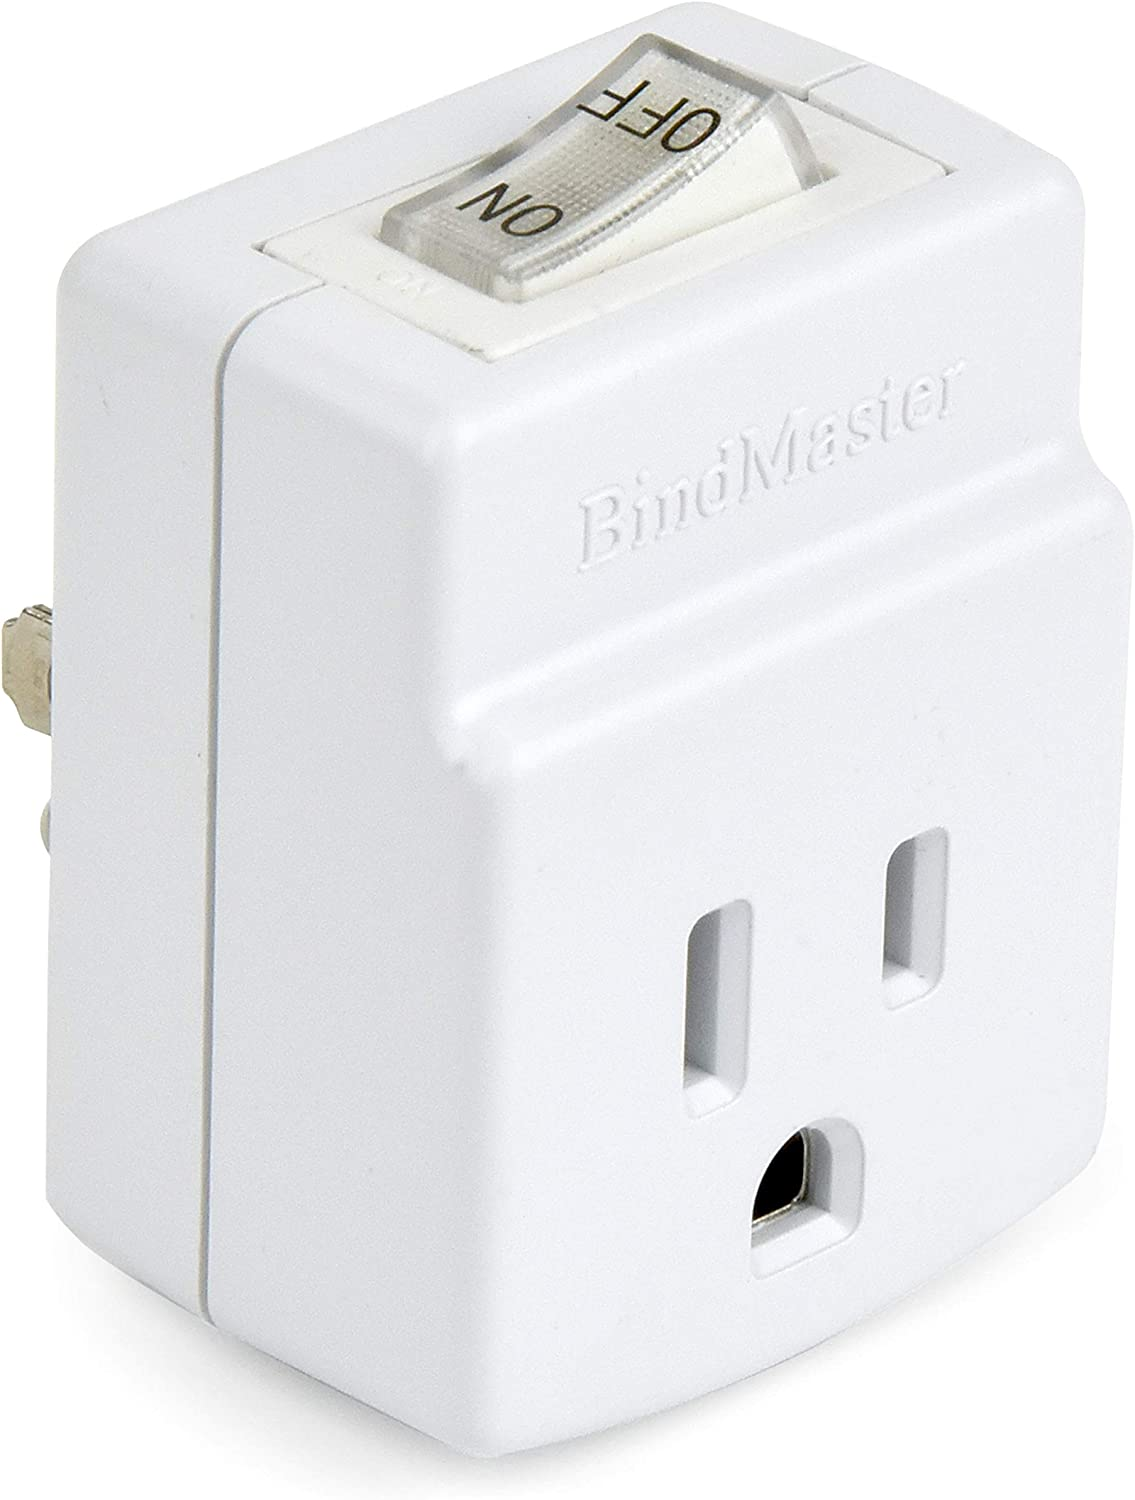 BindMaster 3 Prong Grounded Single Port Power Adapter with Indicator On/Off Switch (1 Pack)